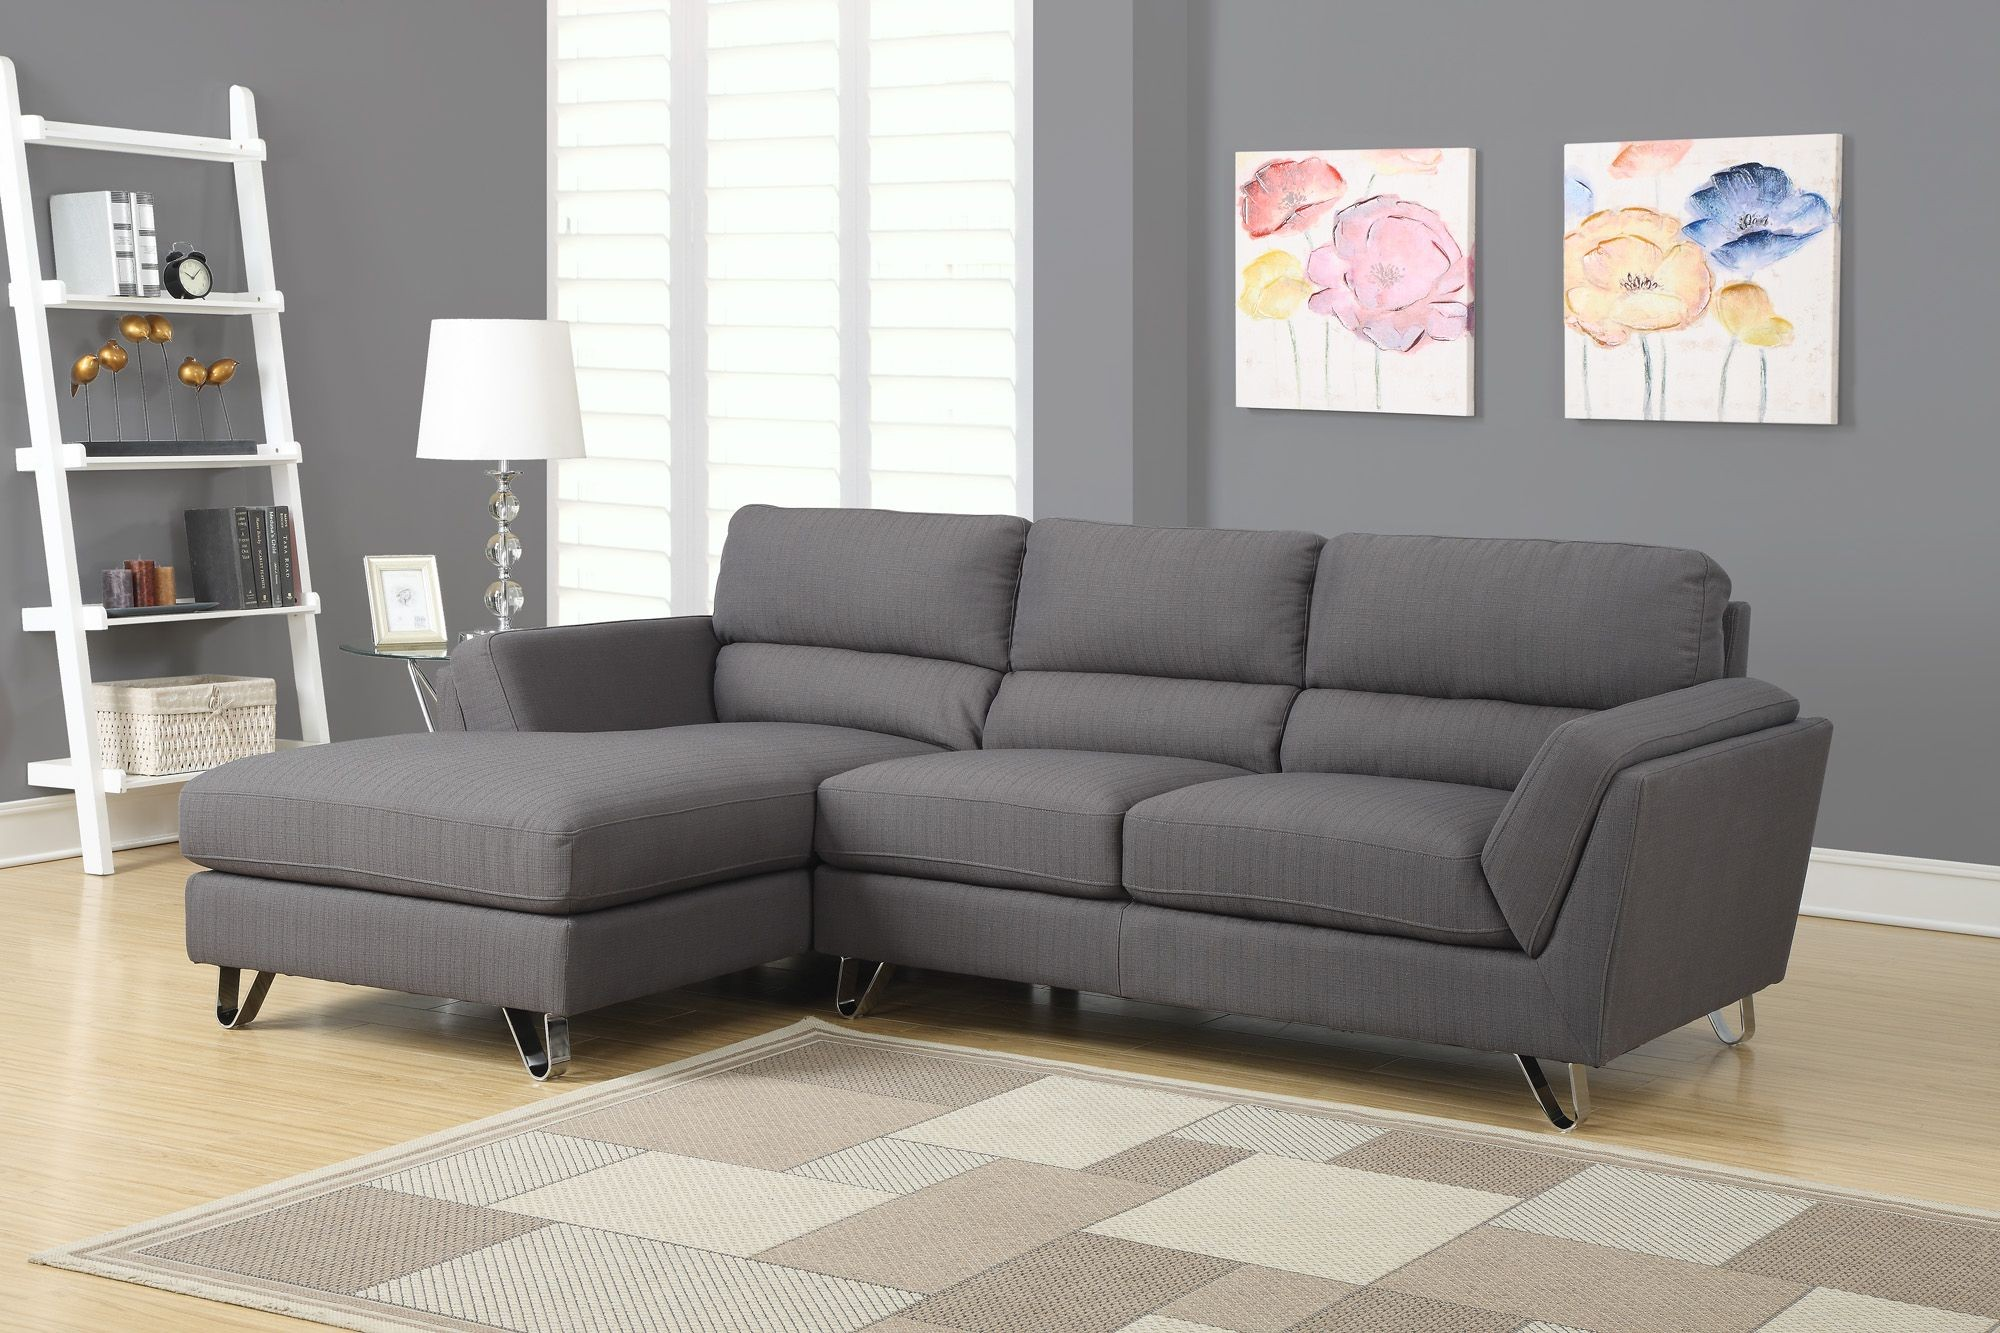 Charcoal gray linen sofa sectional from monarch 8210cg for Meuble brault martineau